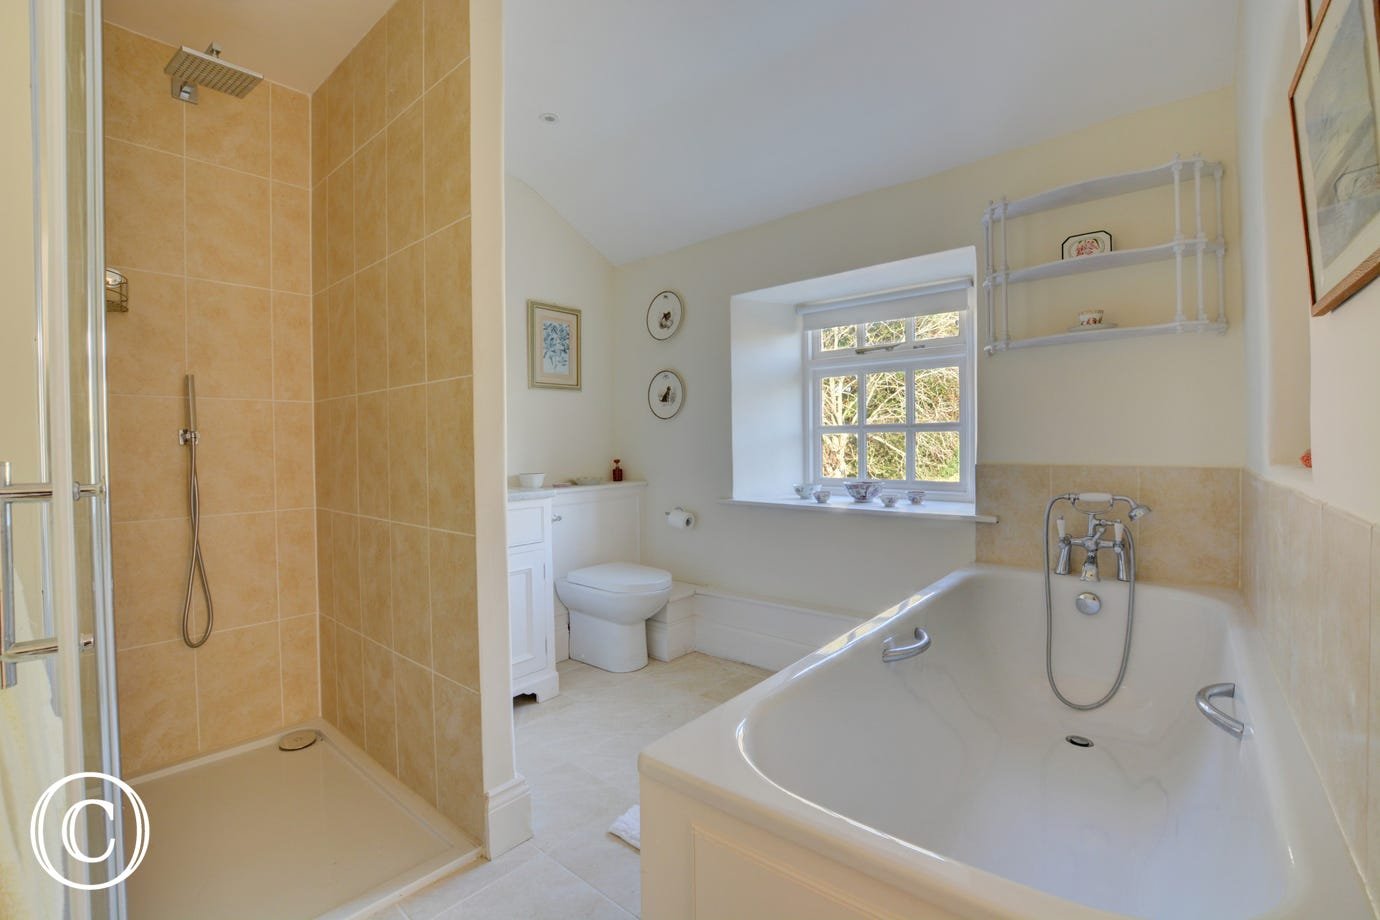 Spacious en-suite bathroom with bath and separate shower